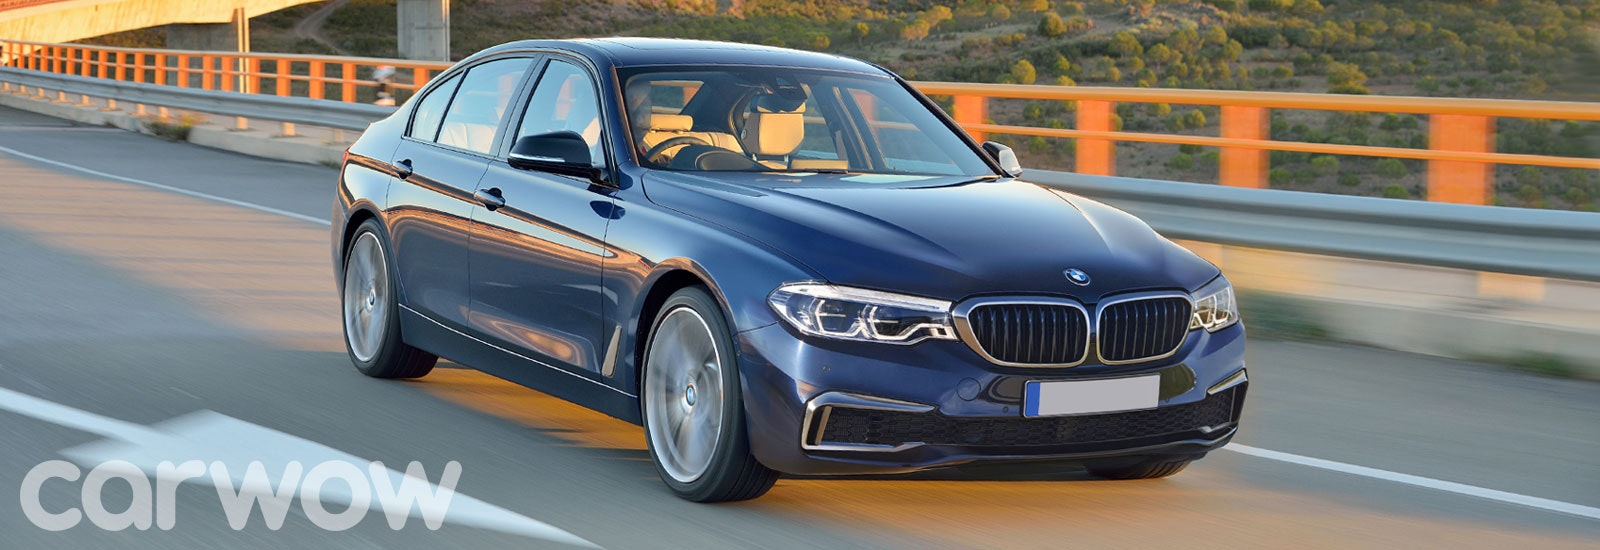 Bmw 3 Series G20 >> 2018 Bmw 3 Series G20 Price Specs Release Date Carwow